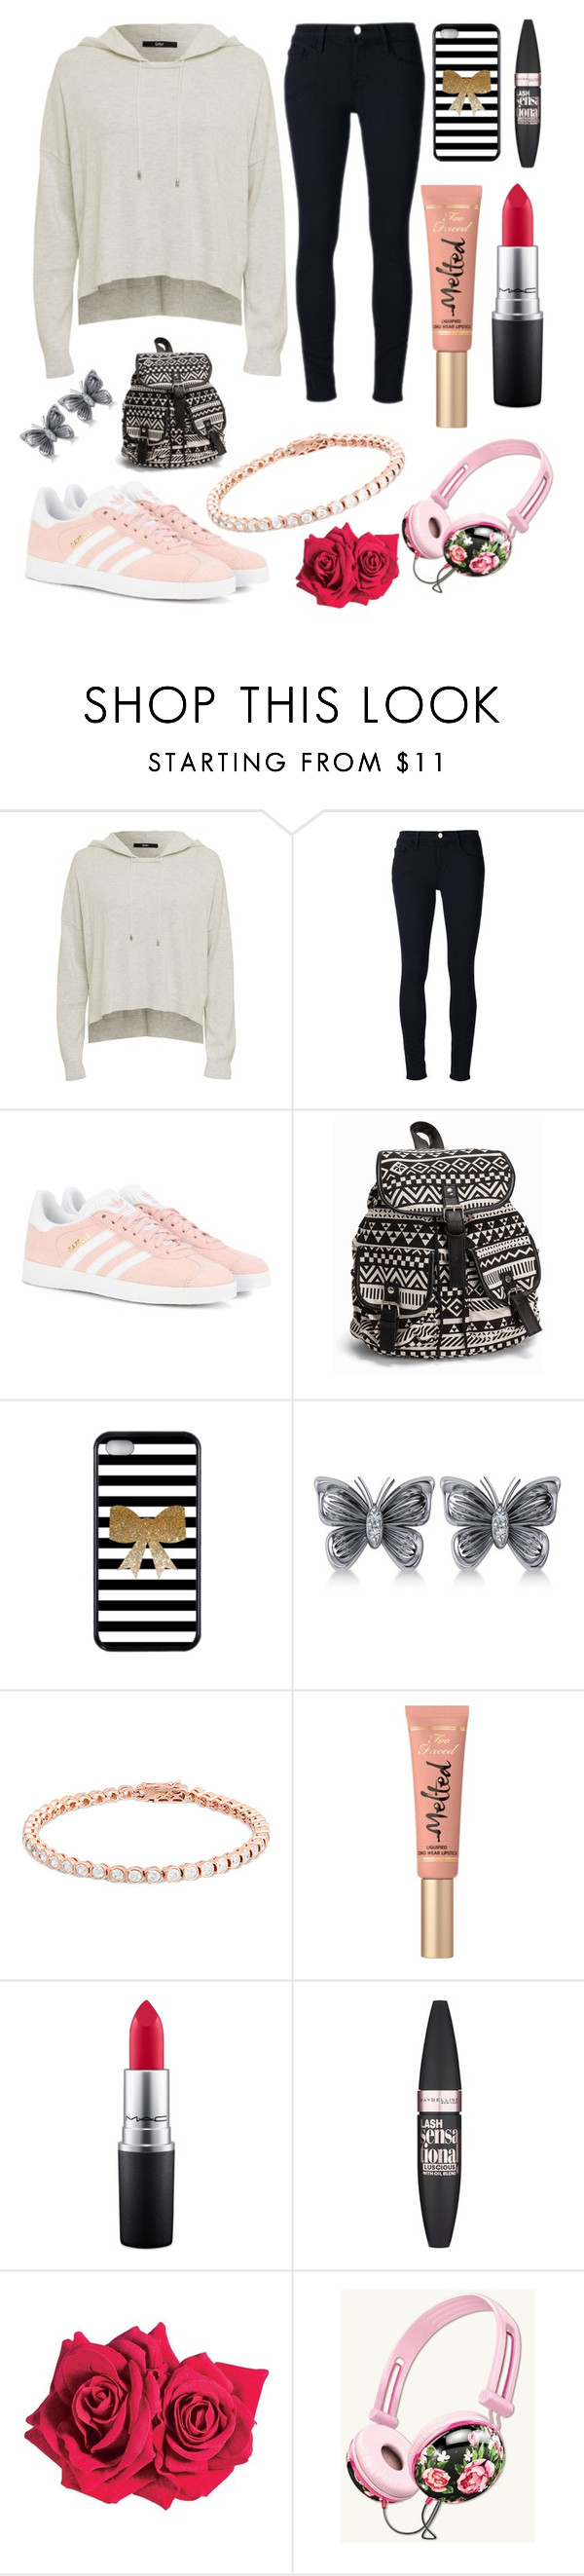 """""""raar"""" by christabetsie ❤ liked on Polyvore featuring Frame Denim, adidas Originals, NLY Accessories, Allurez, Too Faced Cosmetics, MAC Cosmetics, Maybelline and Avon"""